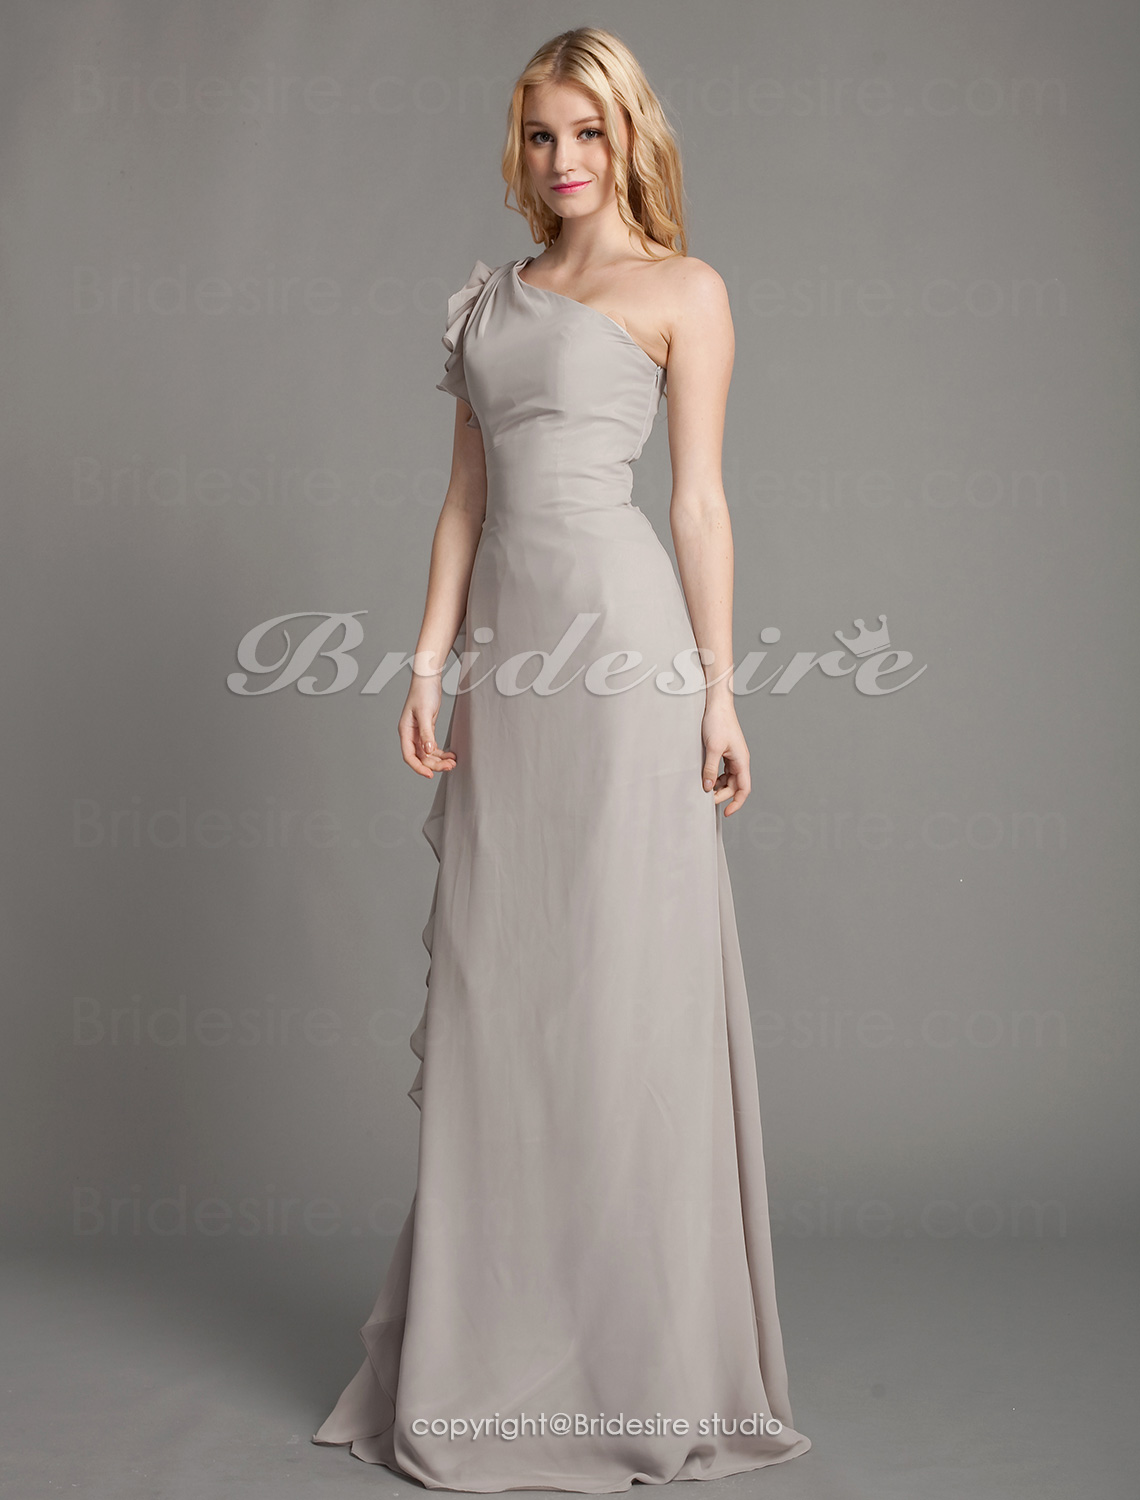 A-line Chiffon Floor-length One Shoulder Bridesmaid Dress